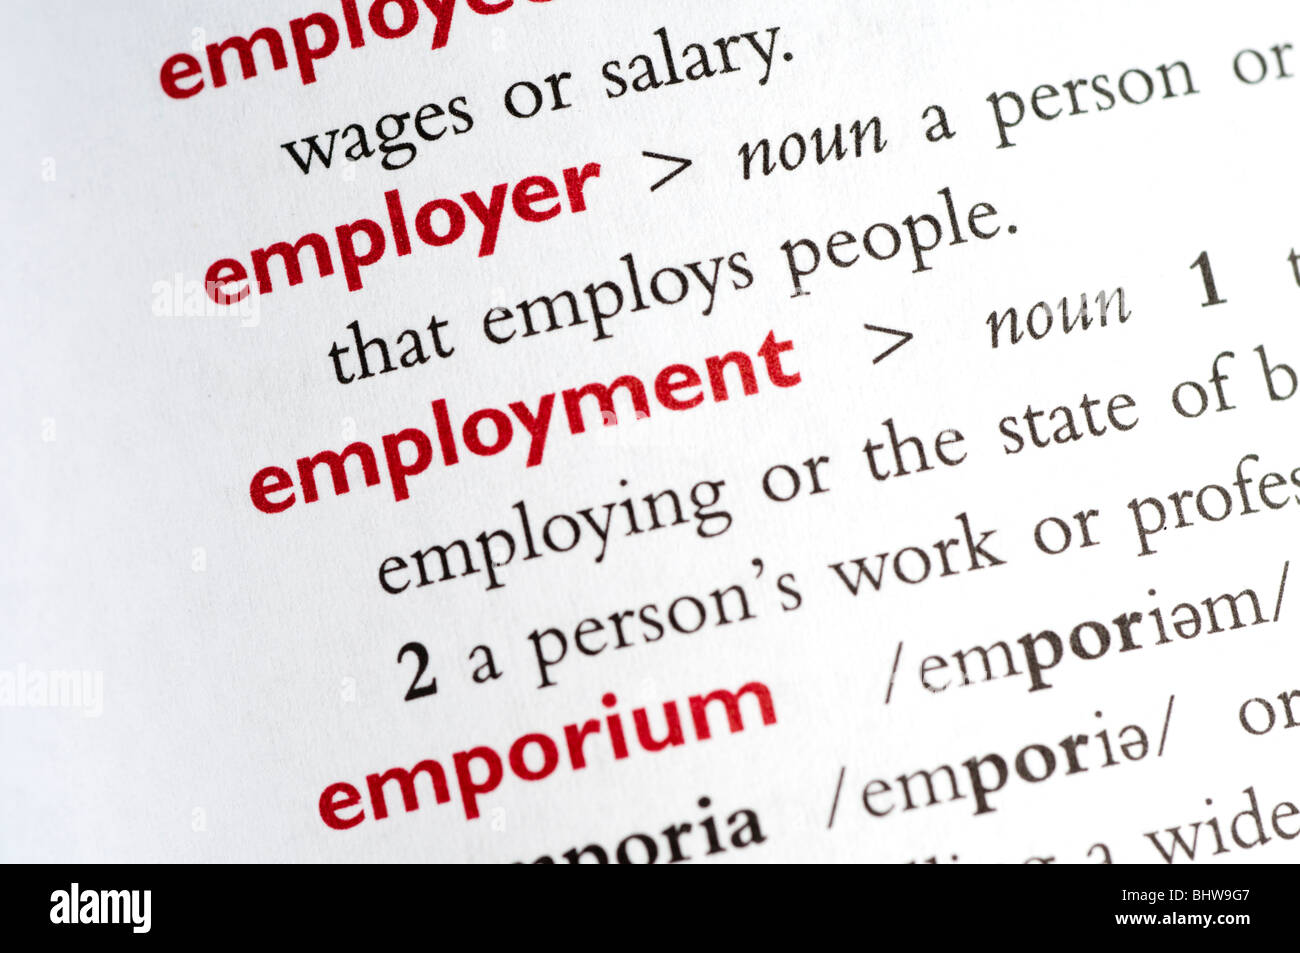 Dictionary definition of employment - Stock Image